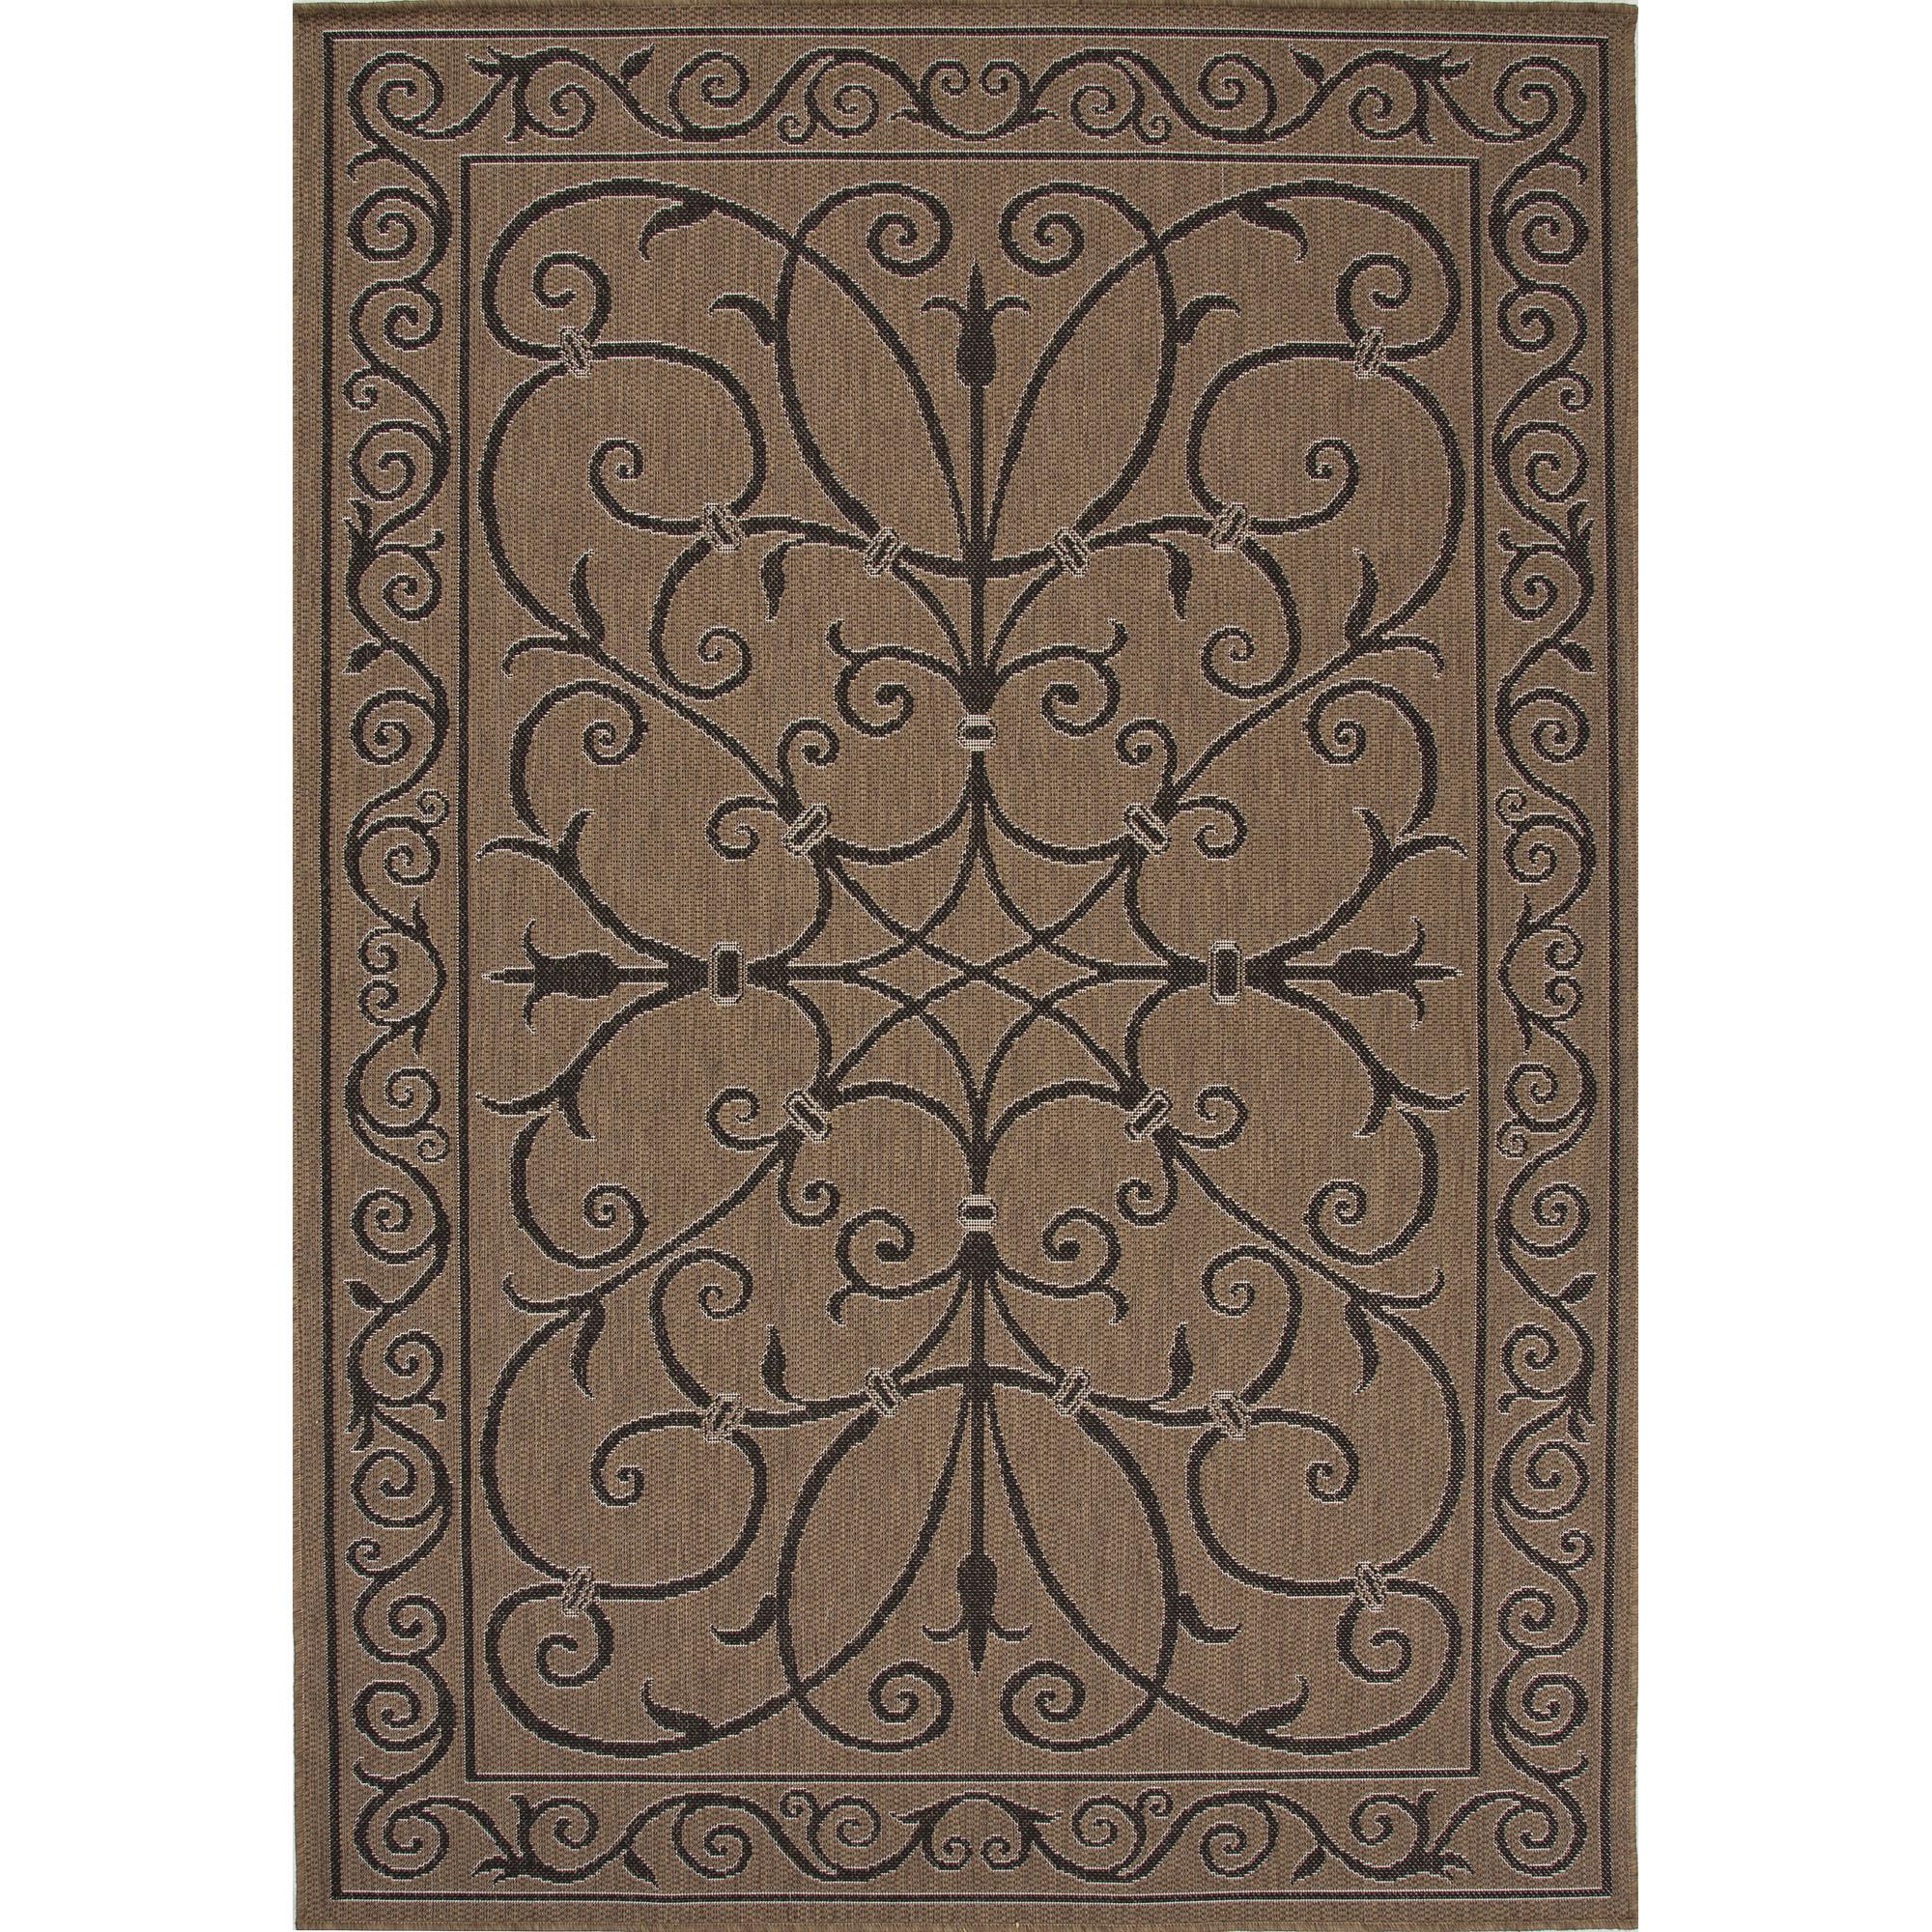 Breeze 7.11 x 10 Rug by JAIPUR Rugs at Sprintz Furniture